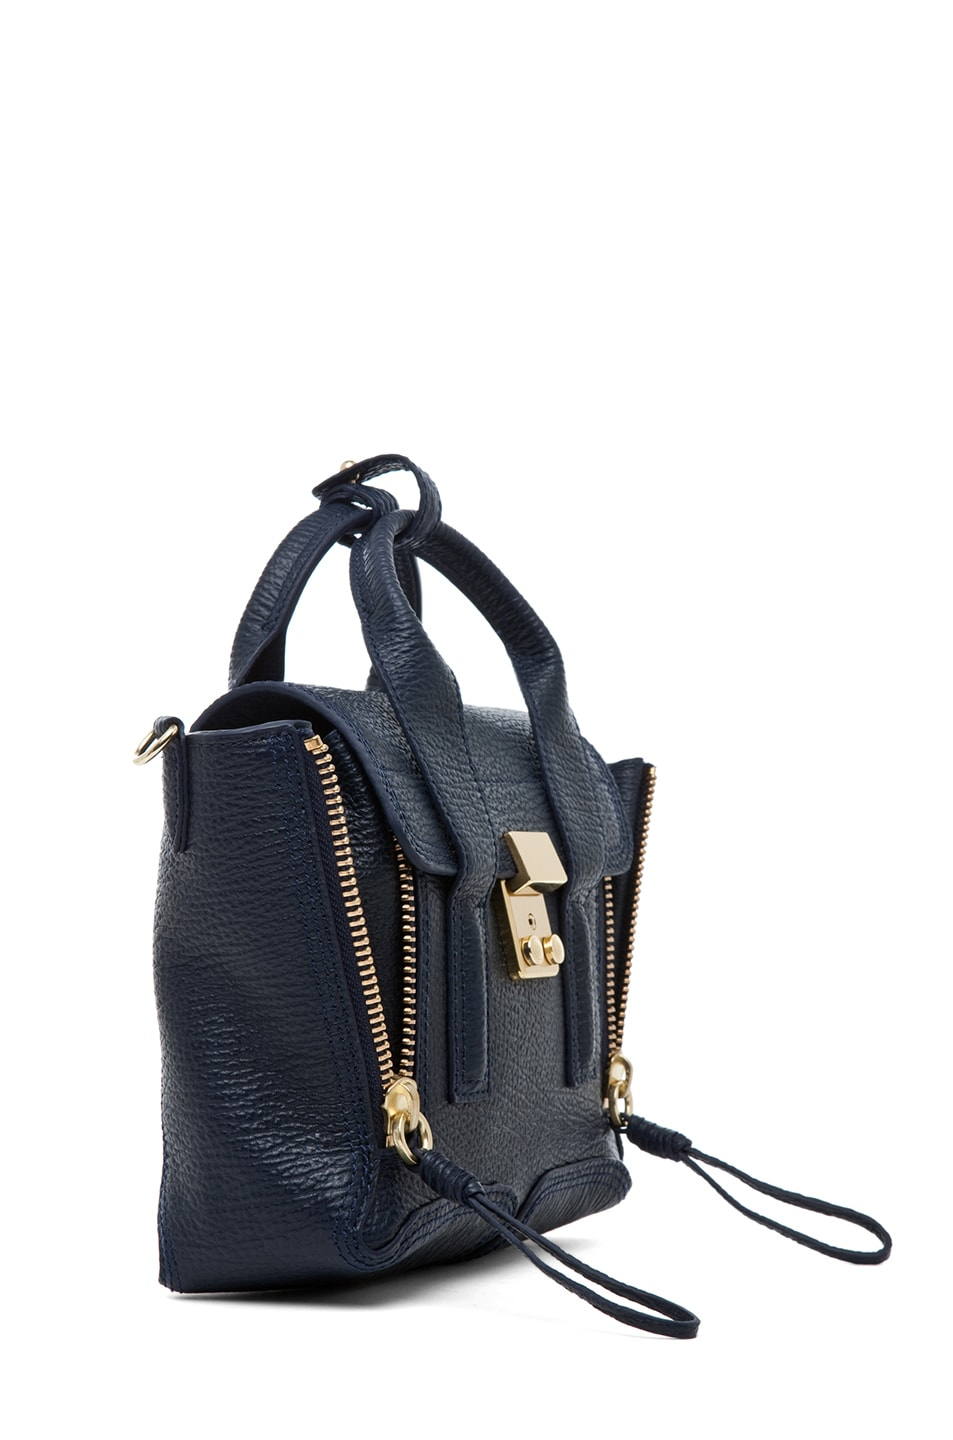 Image 3 of 3.1 phillip lim Mini Pashli Satchel in Ink